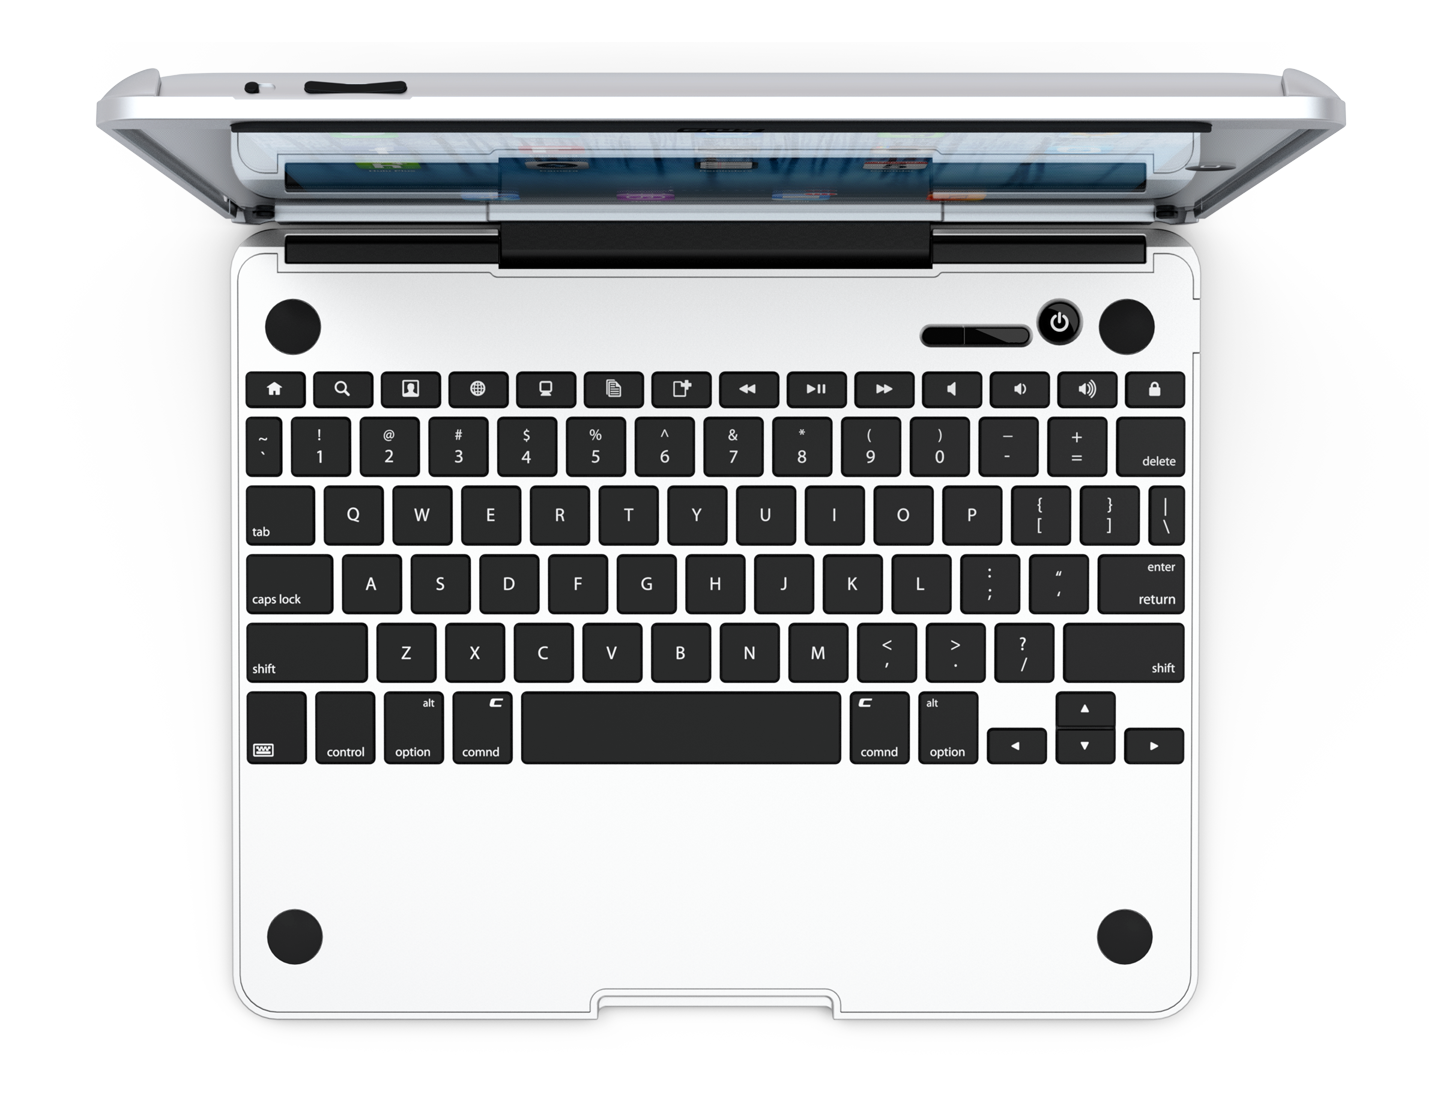 Kitchen sink top view png - Cruxskunk By Cruxcase Is The Thinnest Keyboard Case In The World With A Base That S